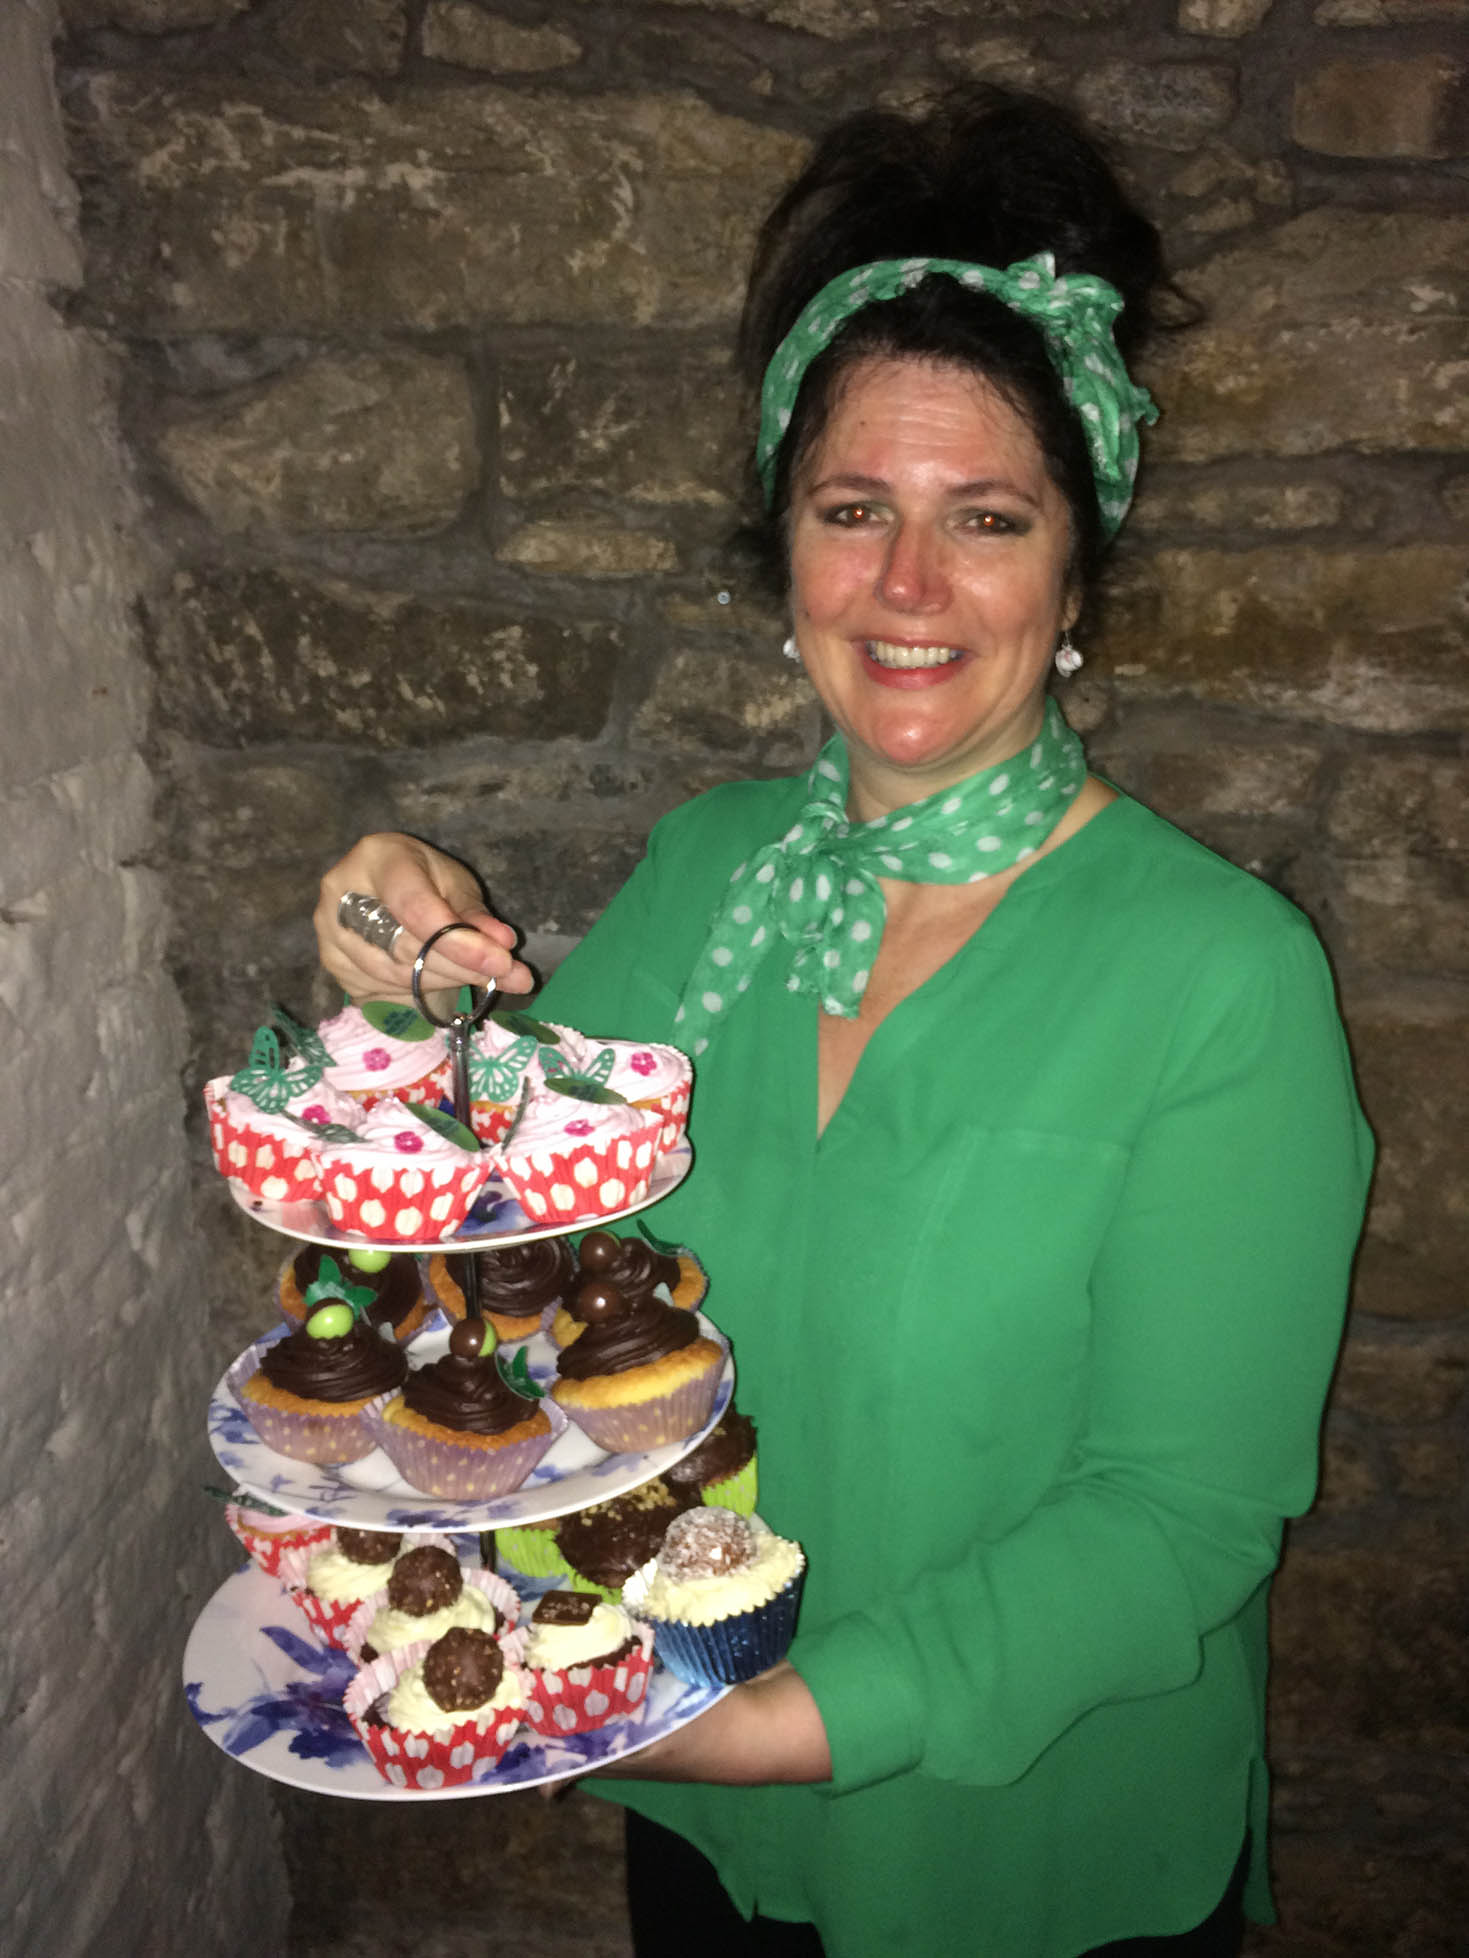 Come on a Mer'cake' Tour! It's Macmillan Coffee Morning time!